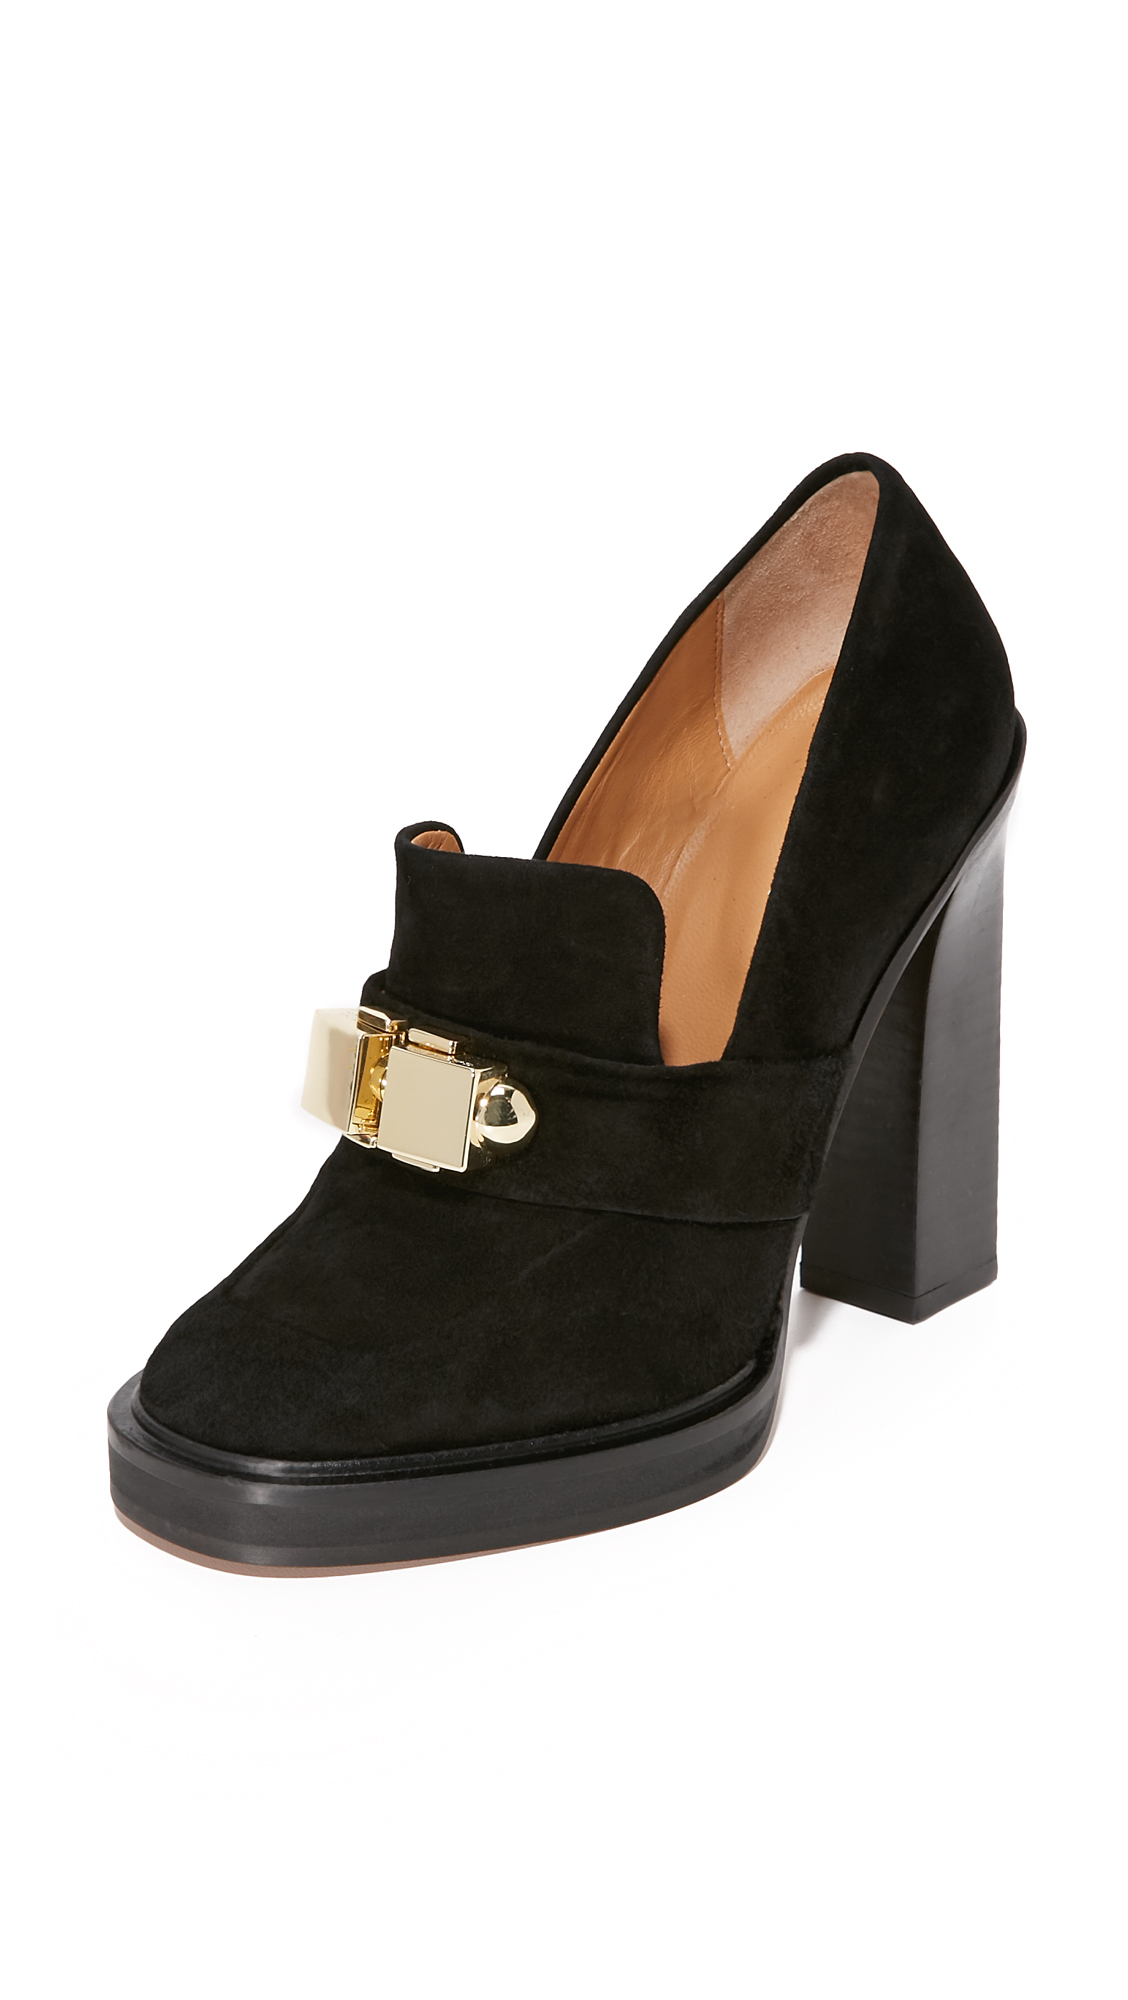 Carven Leather Heels - Black